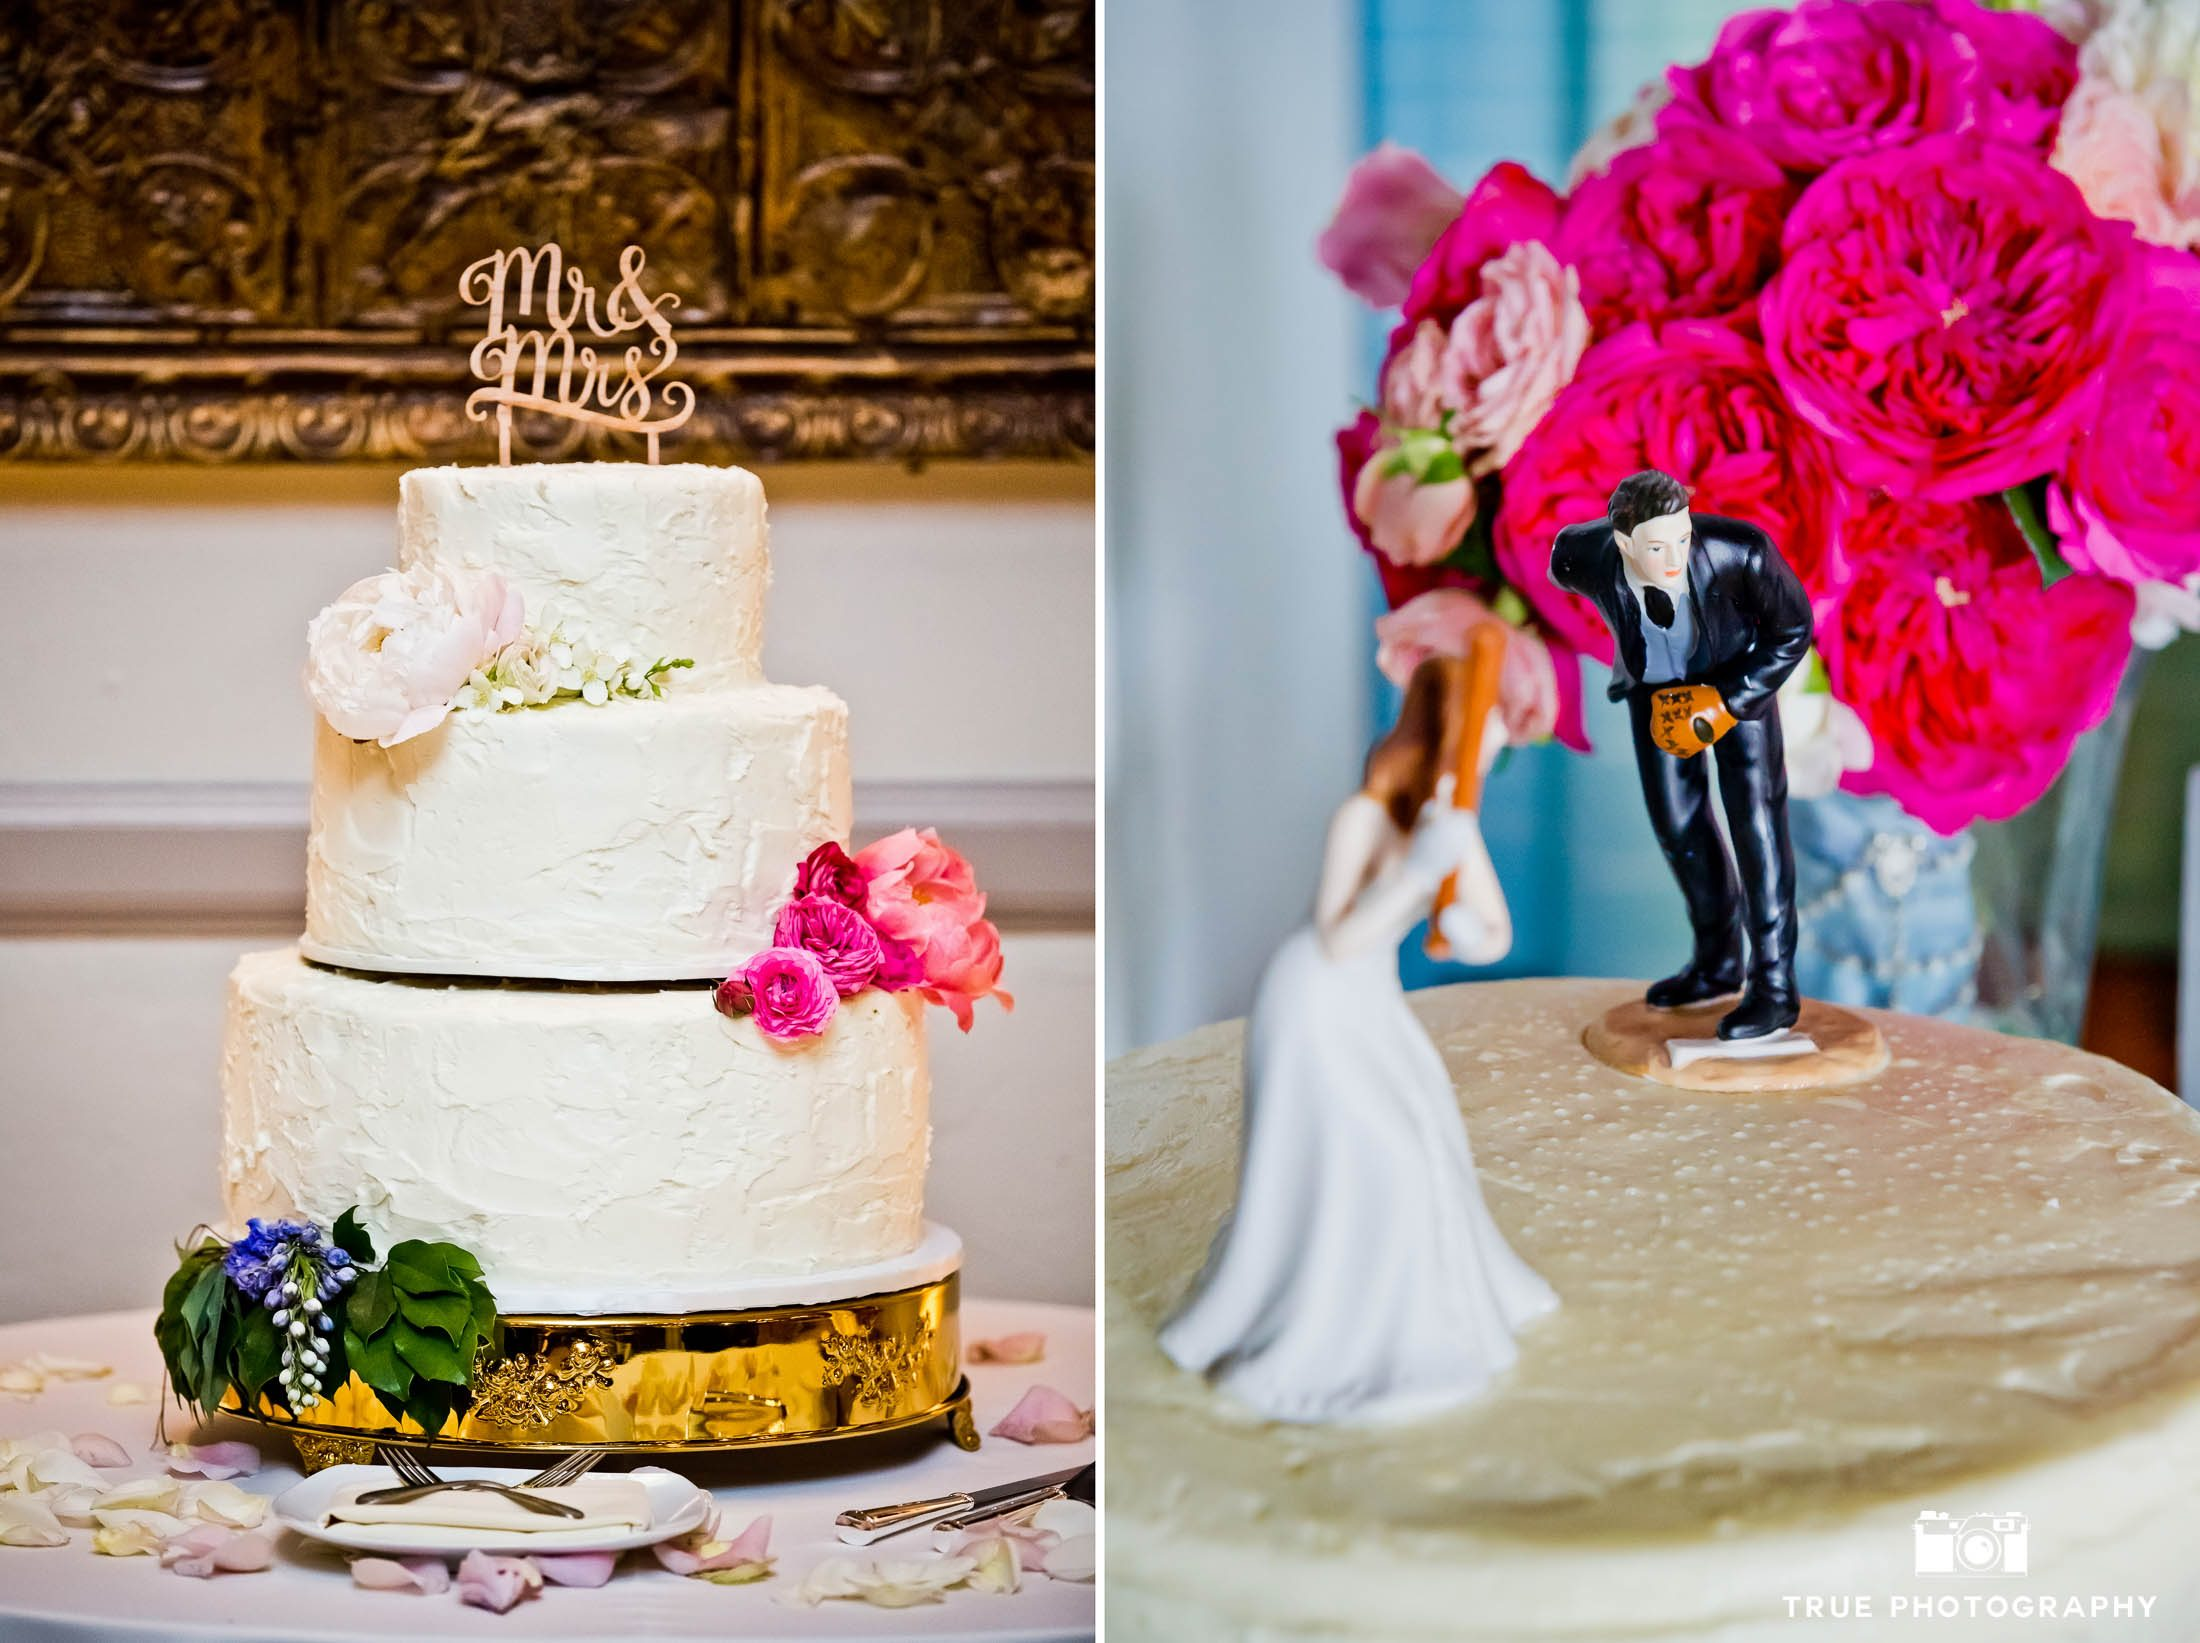 Cute text and sports-inspired wedding cake topper